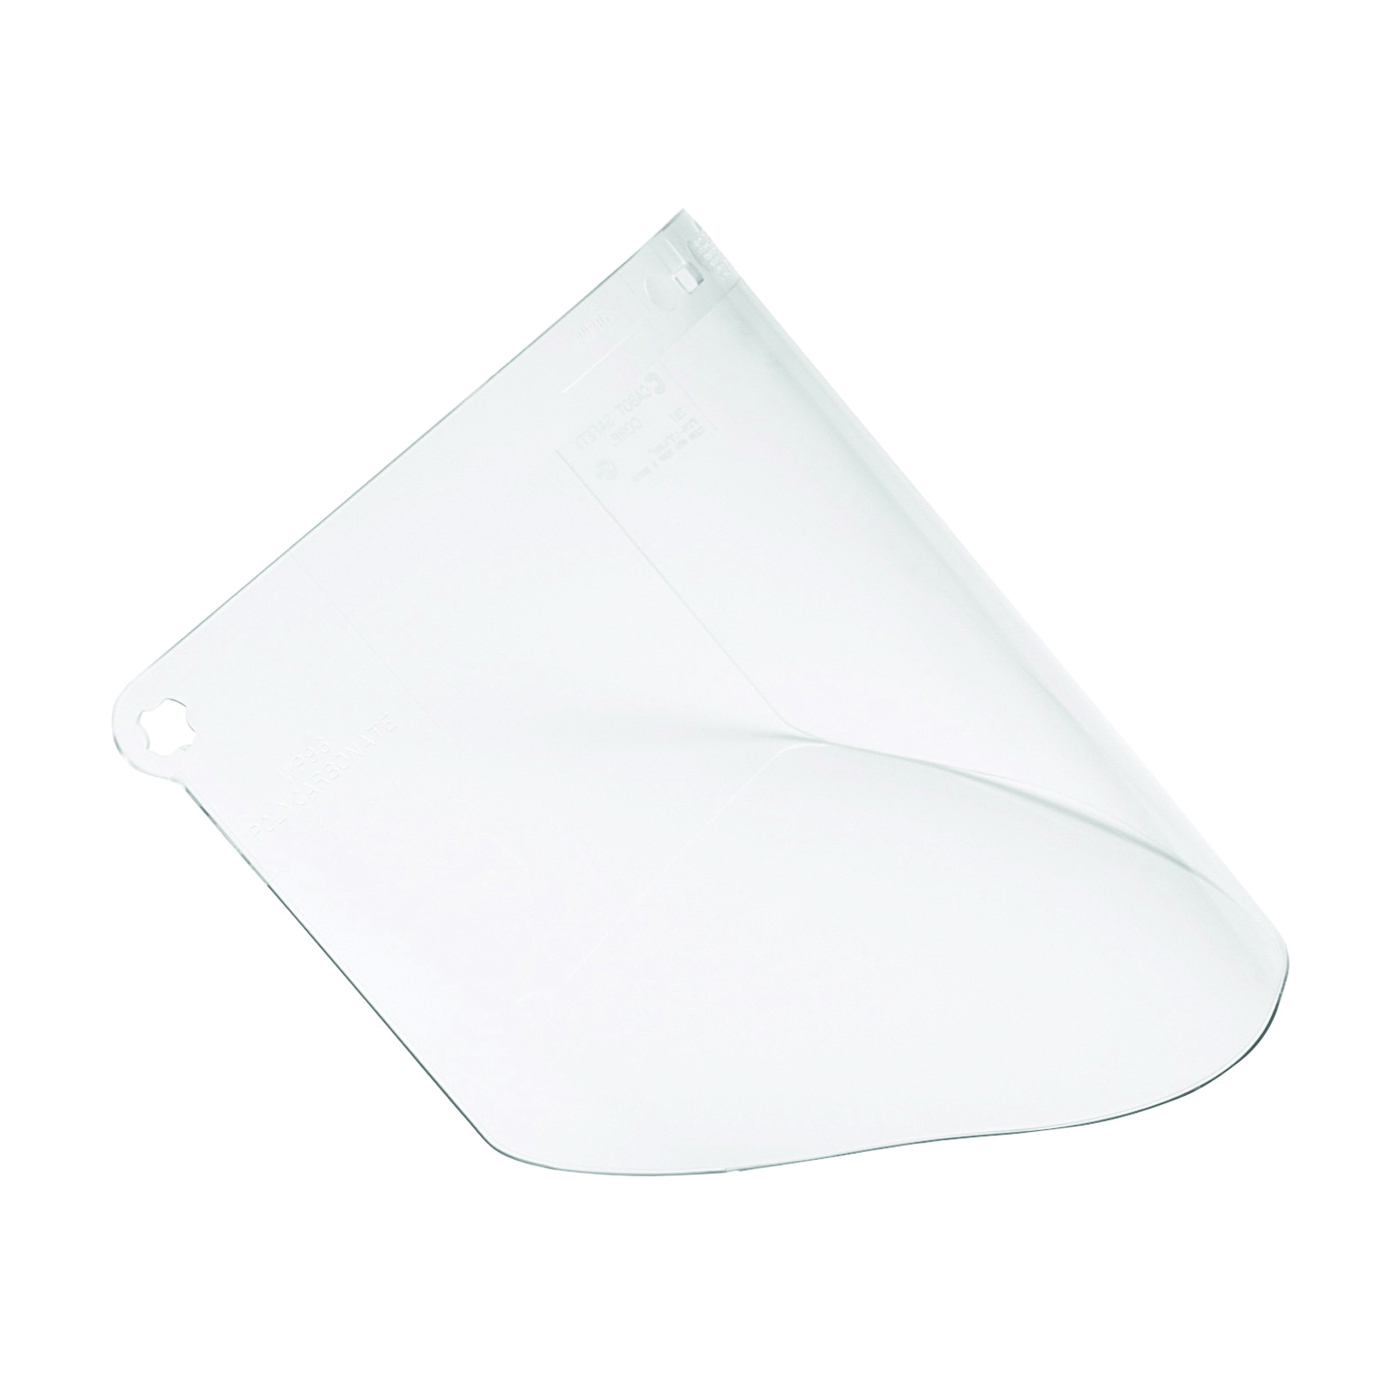 Picture of 3M 90030-80000T Faceshield Window, Polycarbonate, Clear